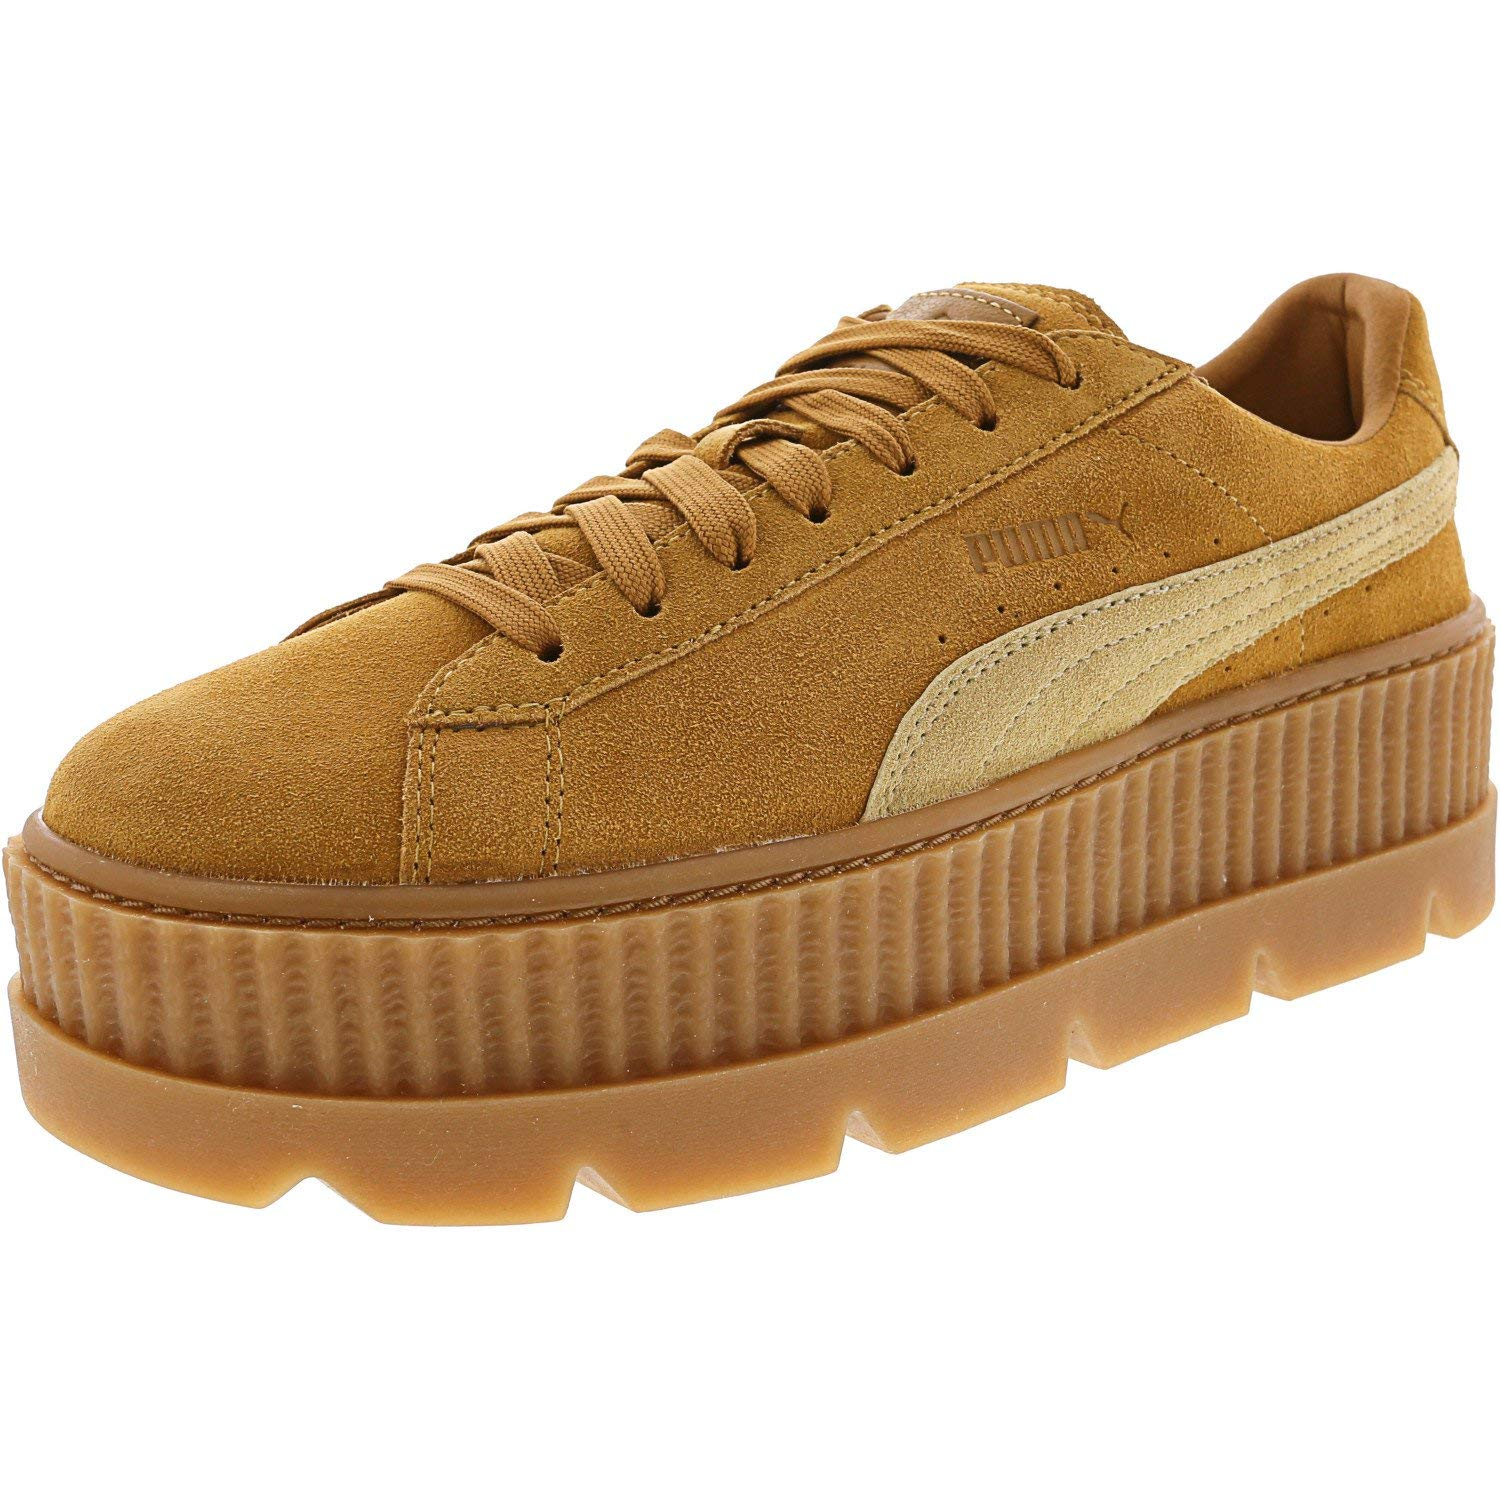 new product 1be0a bebc1 PUMA Womens Fenty by Rihanna Suede Cleated Creeper Casual Sneakers,